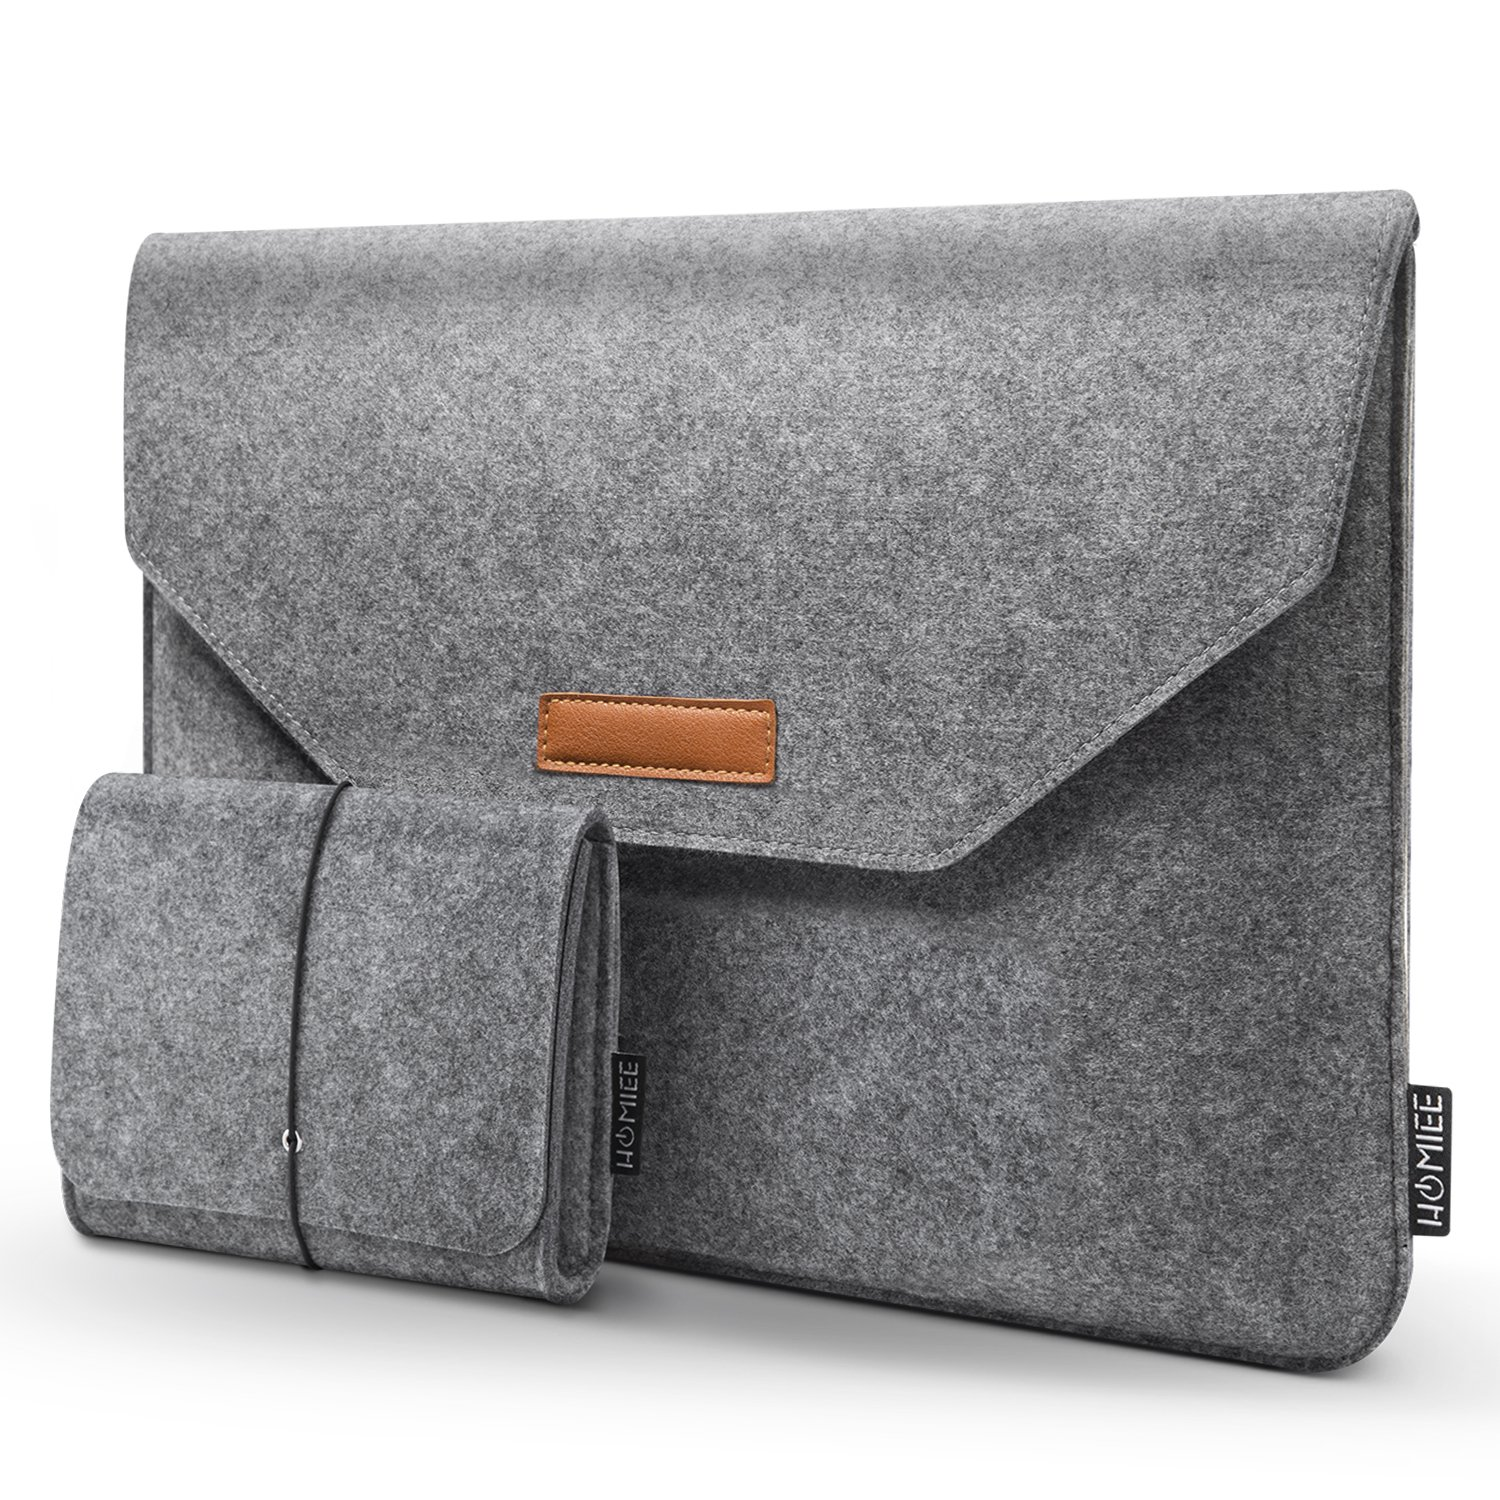 HOMIEE MacBook Accessory Sleeve 13-13.3 Inch Felt Sleeve Case for 2018 New MacBook Pro, MacBook Pro Retina, MacBook Air, 12.9 iPad Pro, Dell XPS, Lenovo/HP/Chromebook Ultra Slim Notebook, Light Gray 12.9 iPad Pro LS1002